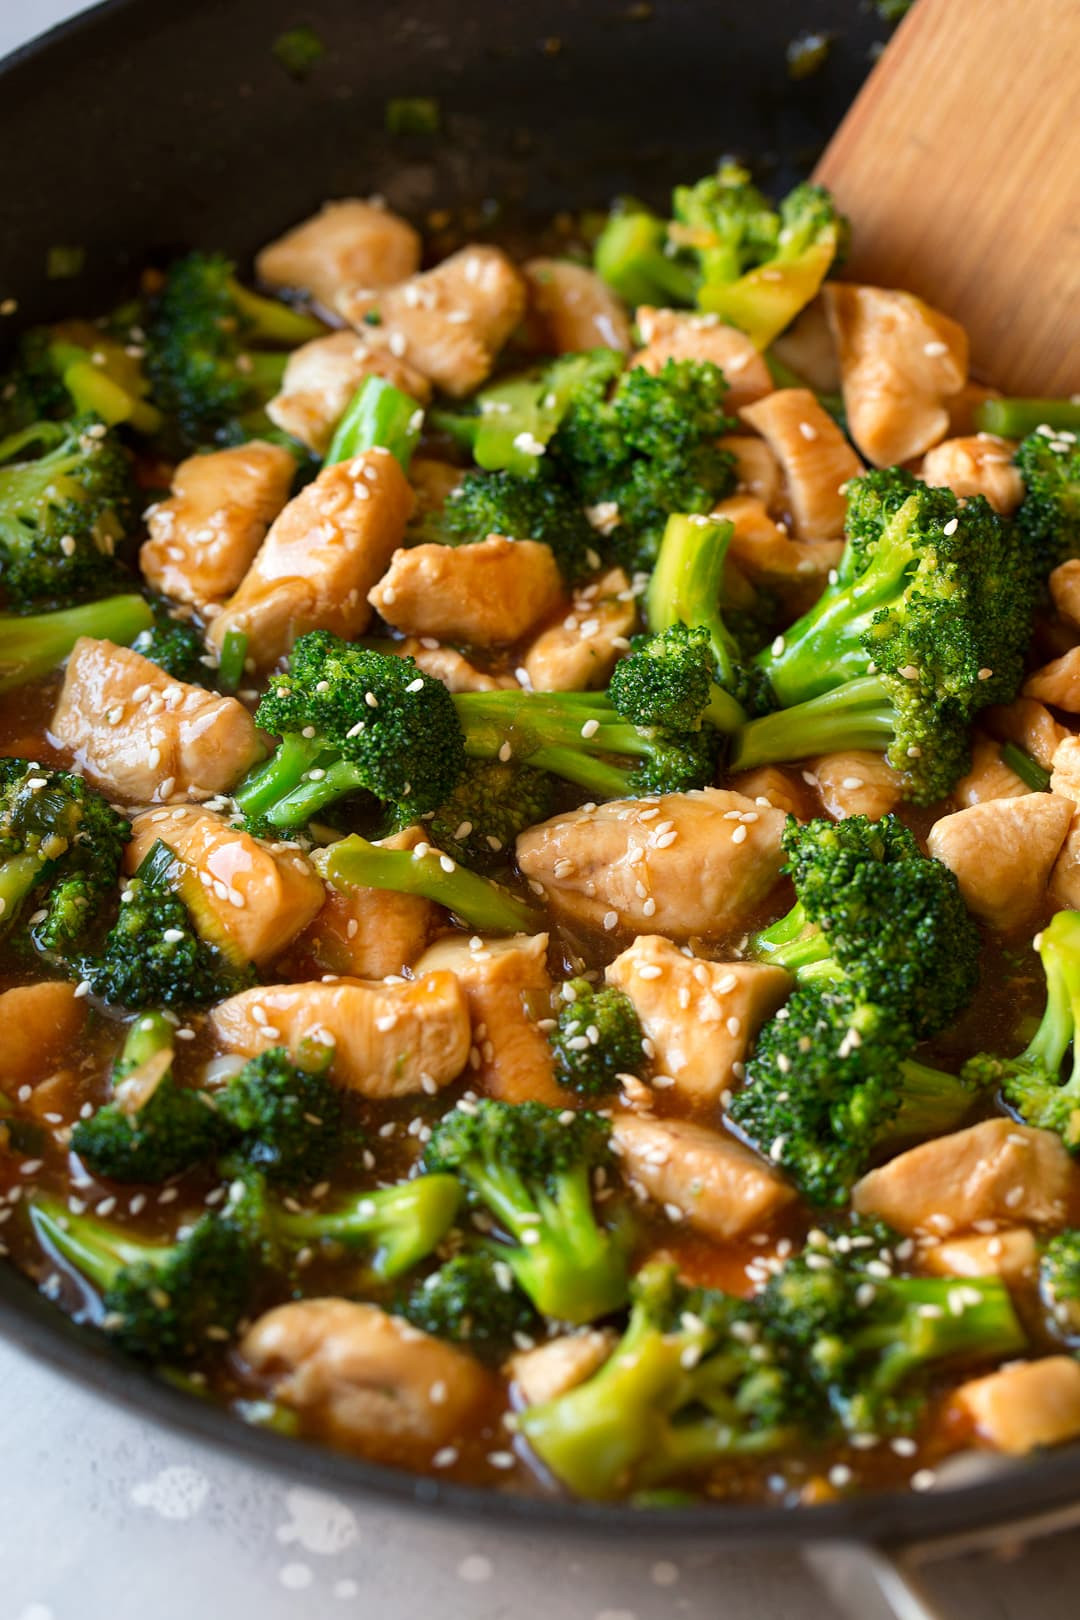 Chinese Chicken And Broccoli Recipes  Chinese Chicken and Broccoli Stir Fry Healthy & Easy